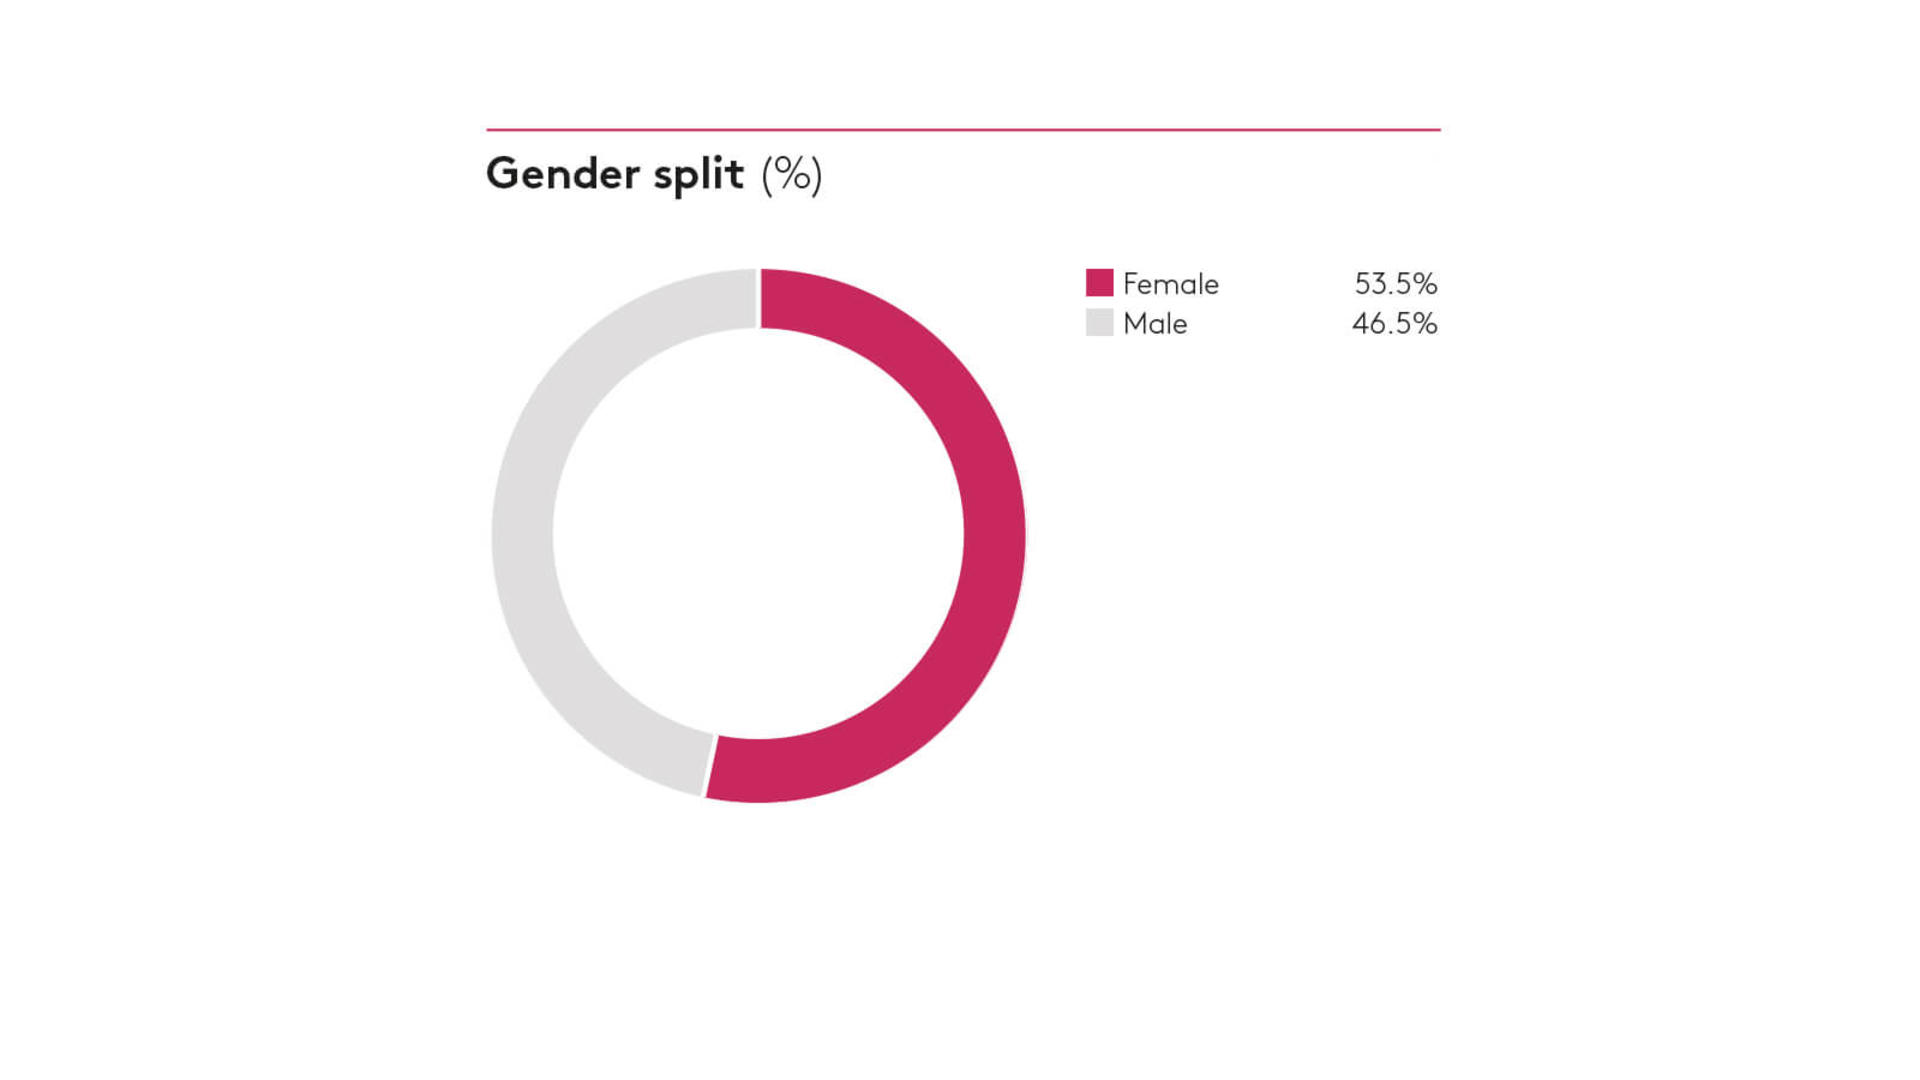 Gender by split 2018